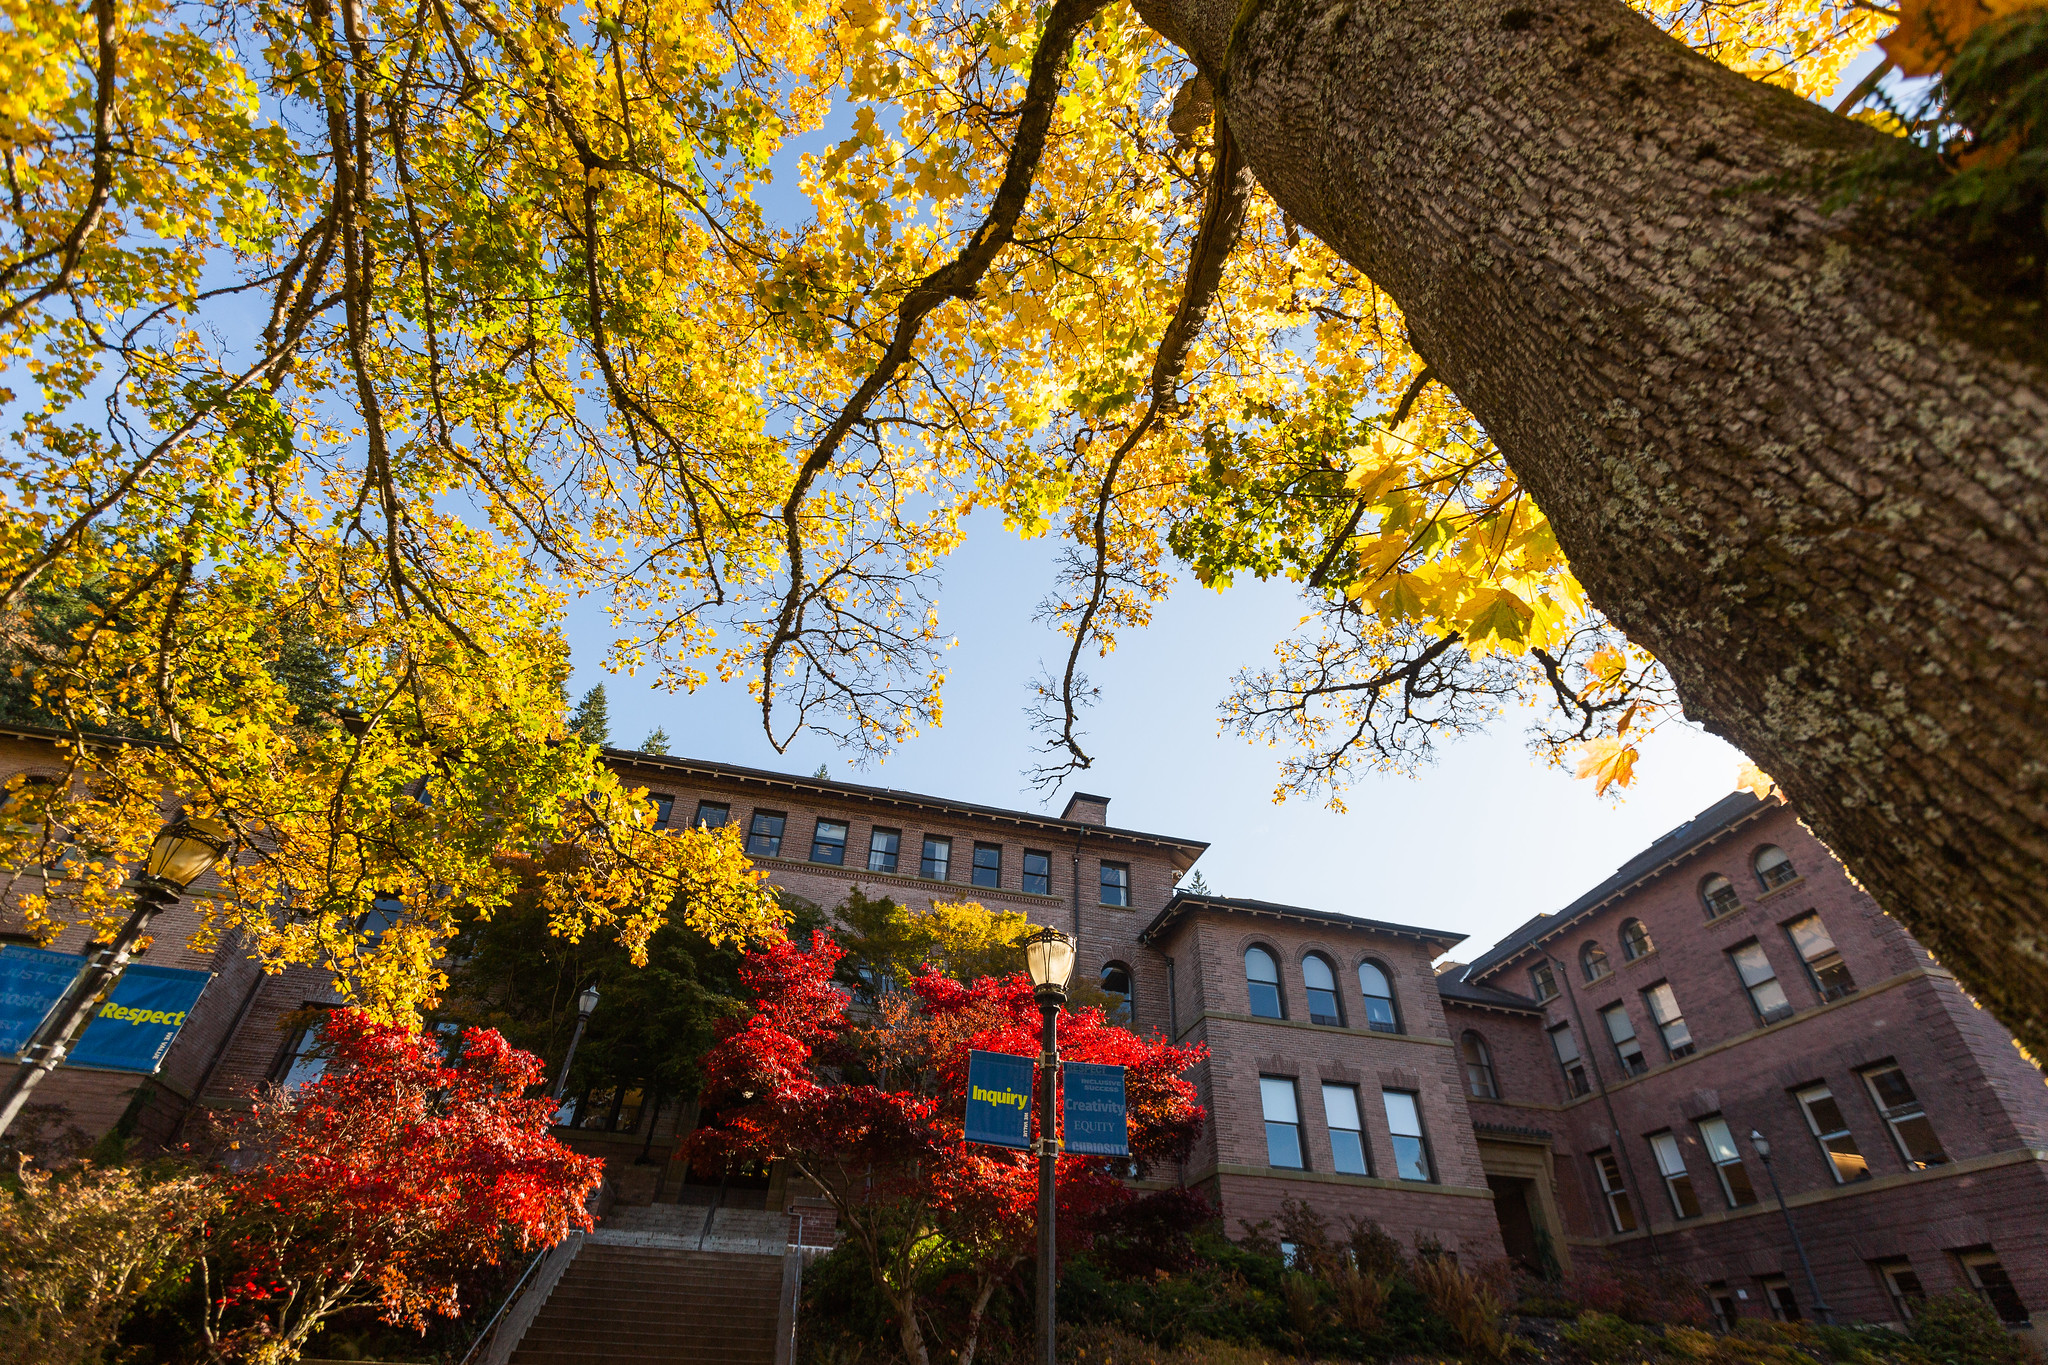 Old Main surrounded by colorful fall foliage